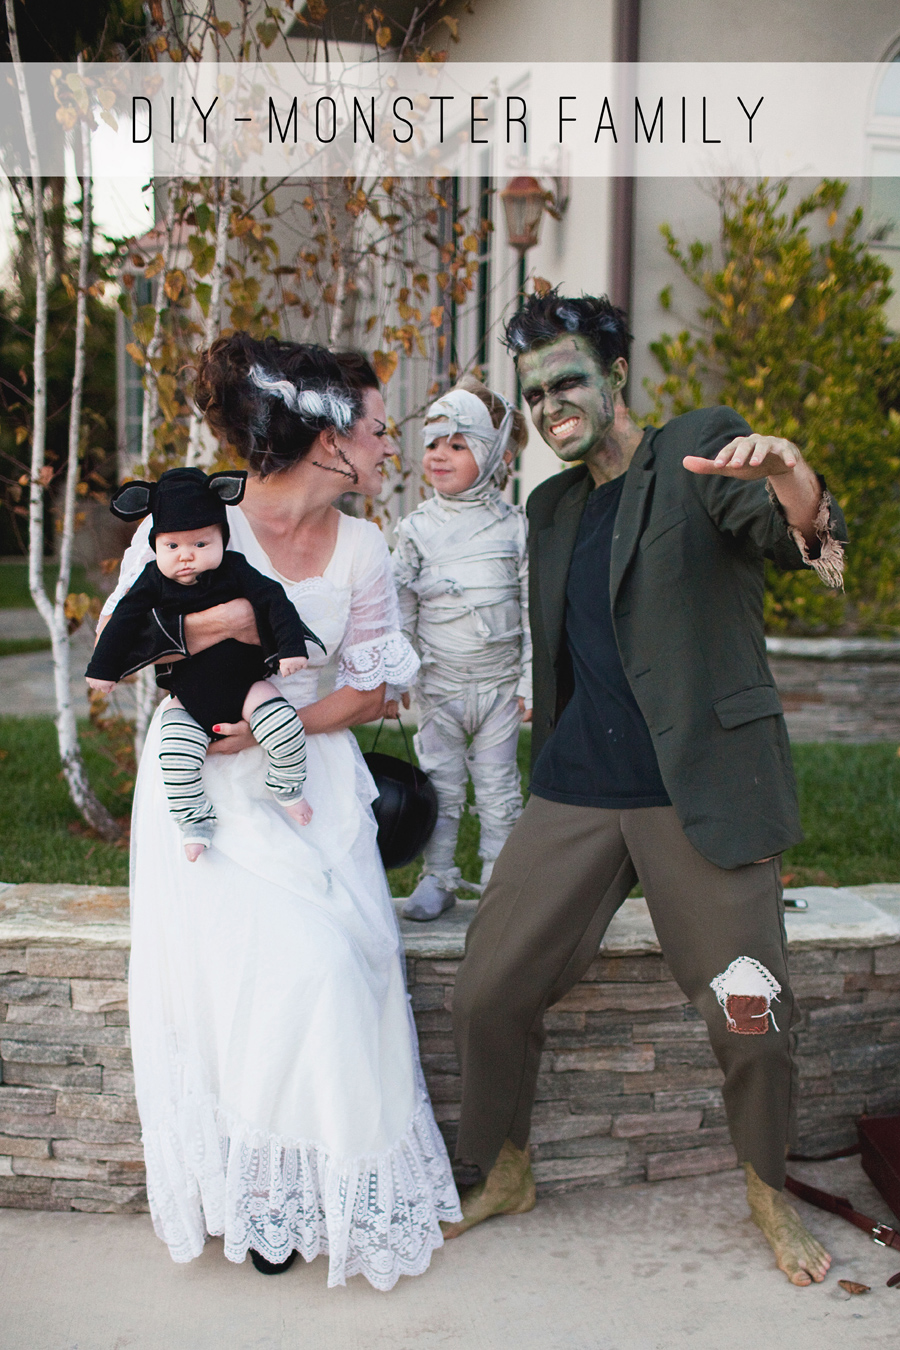 Monster-Family-Costume-DIY